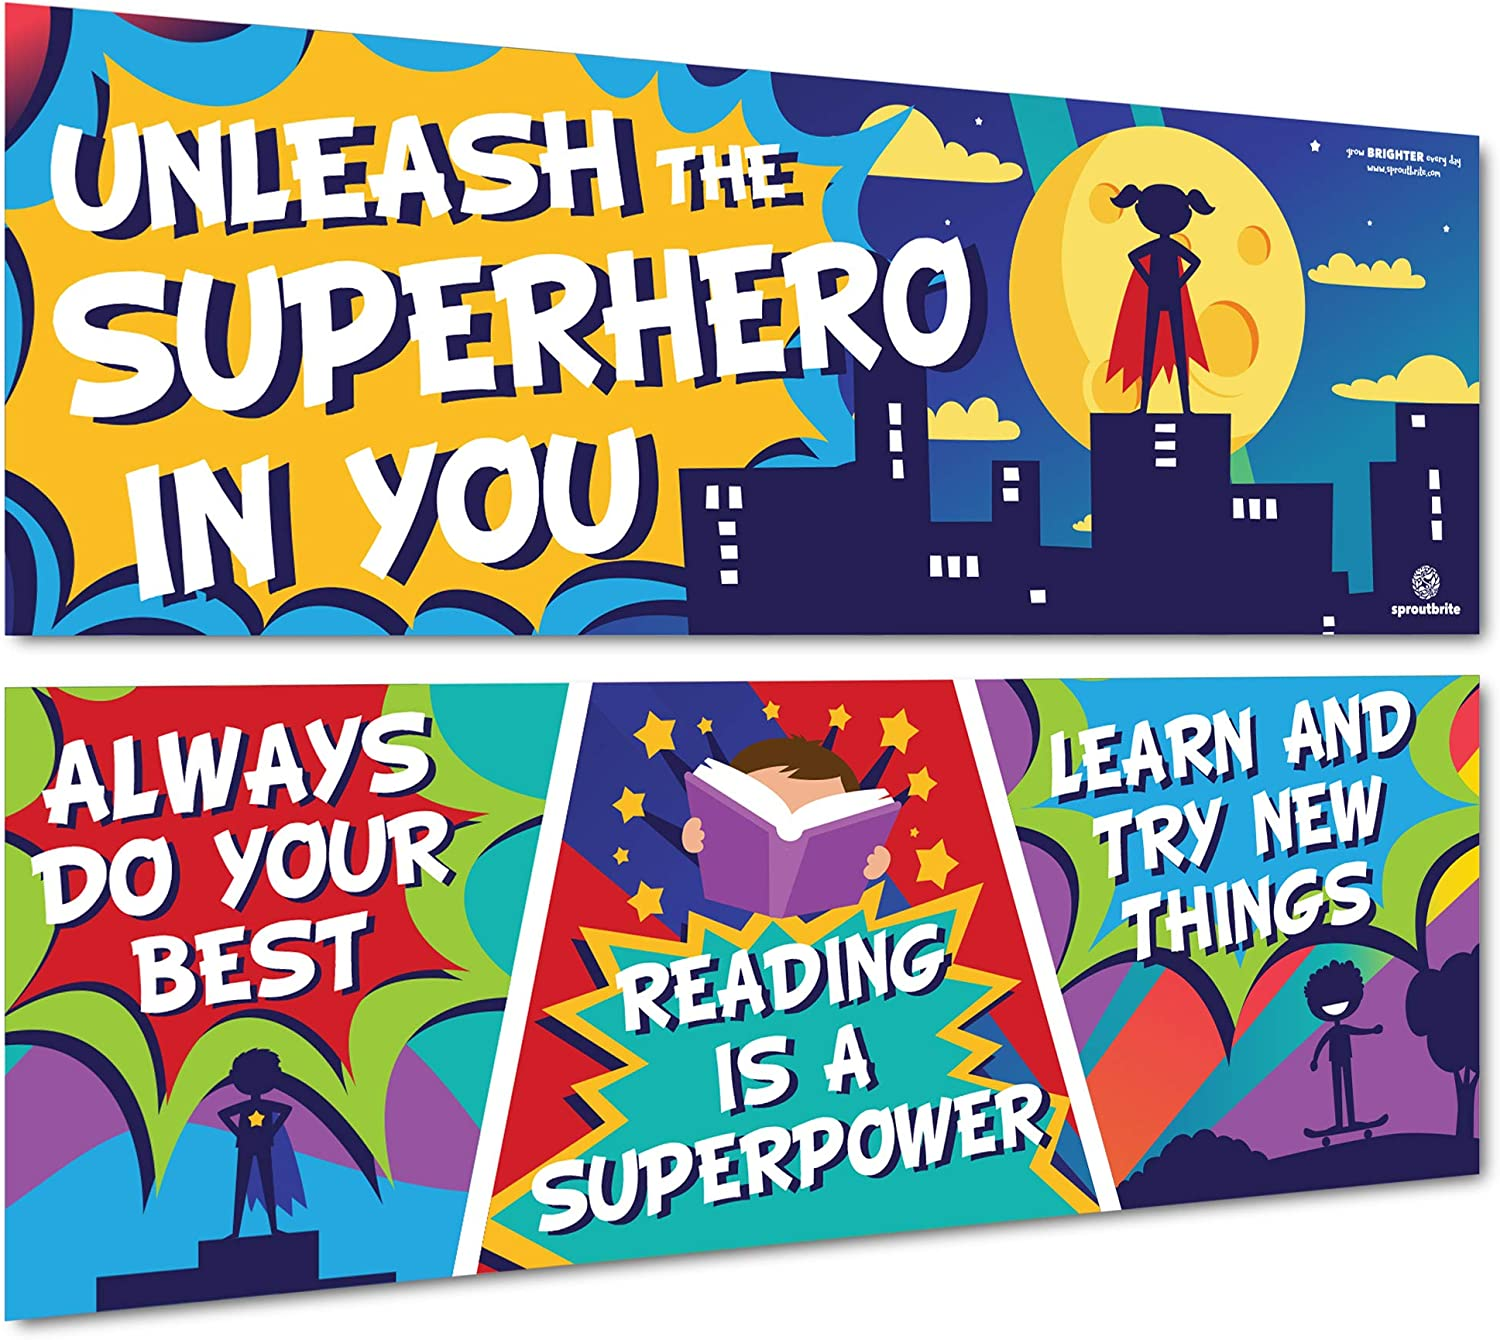 Sproutbrite Superhero Classroom Decorations - Posters and Banners for Teachers - Bulletin Board and Wall Decor for Pre School, Elementary and Middle School